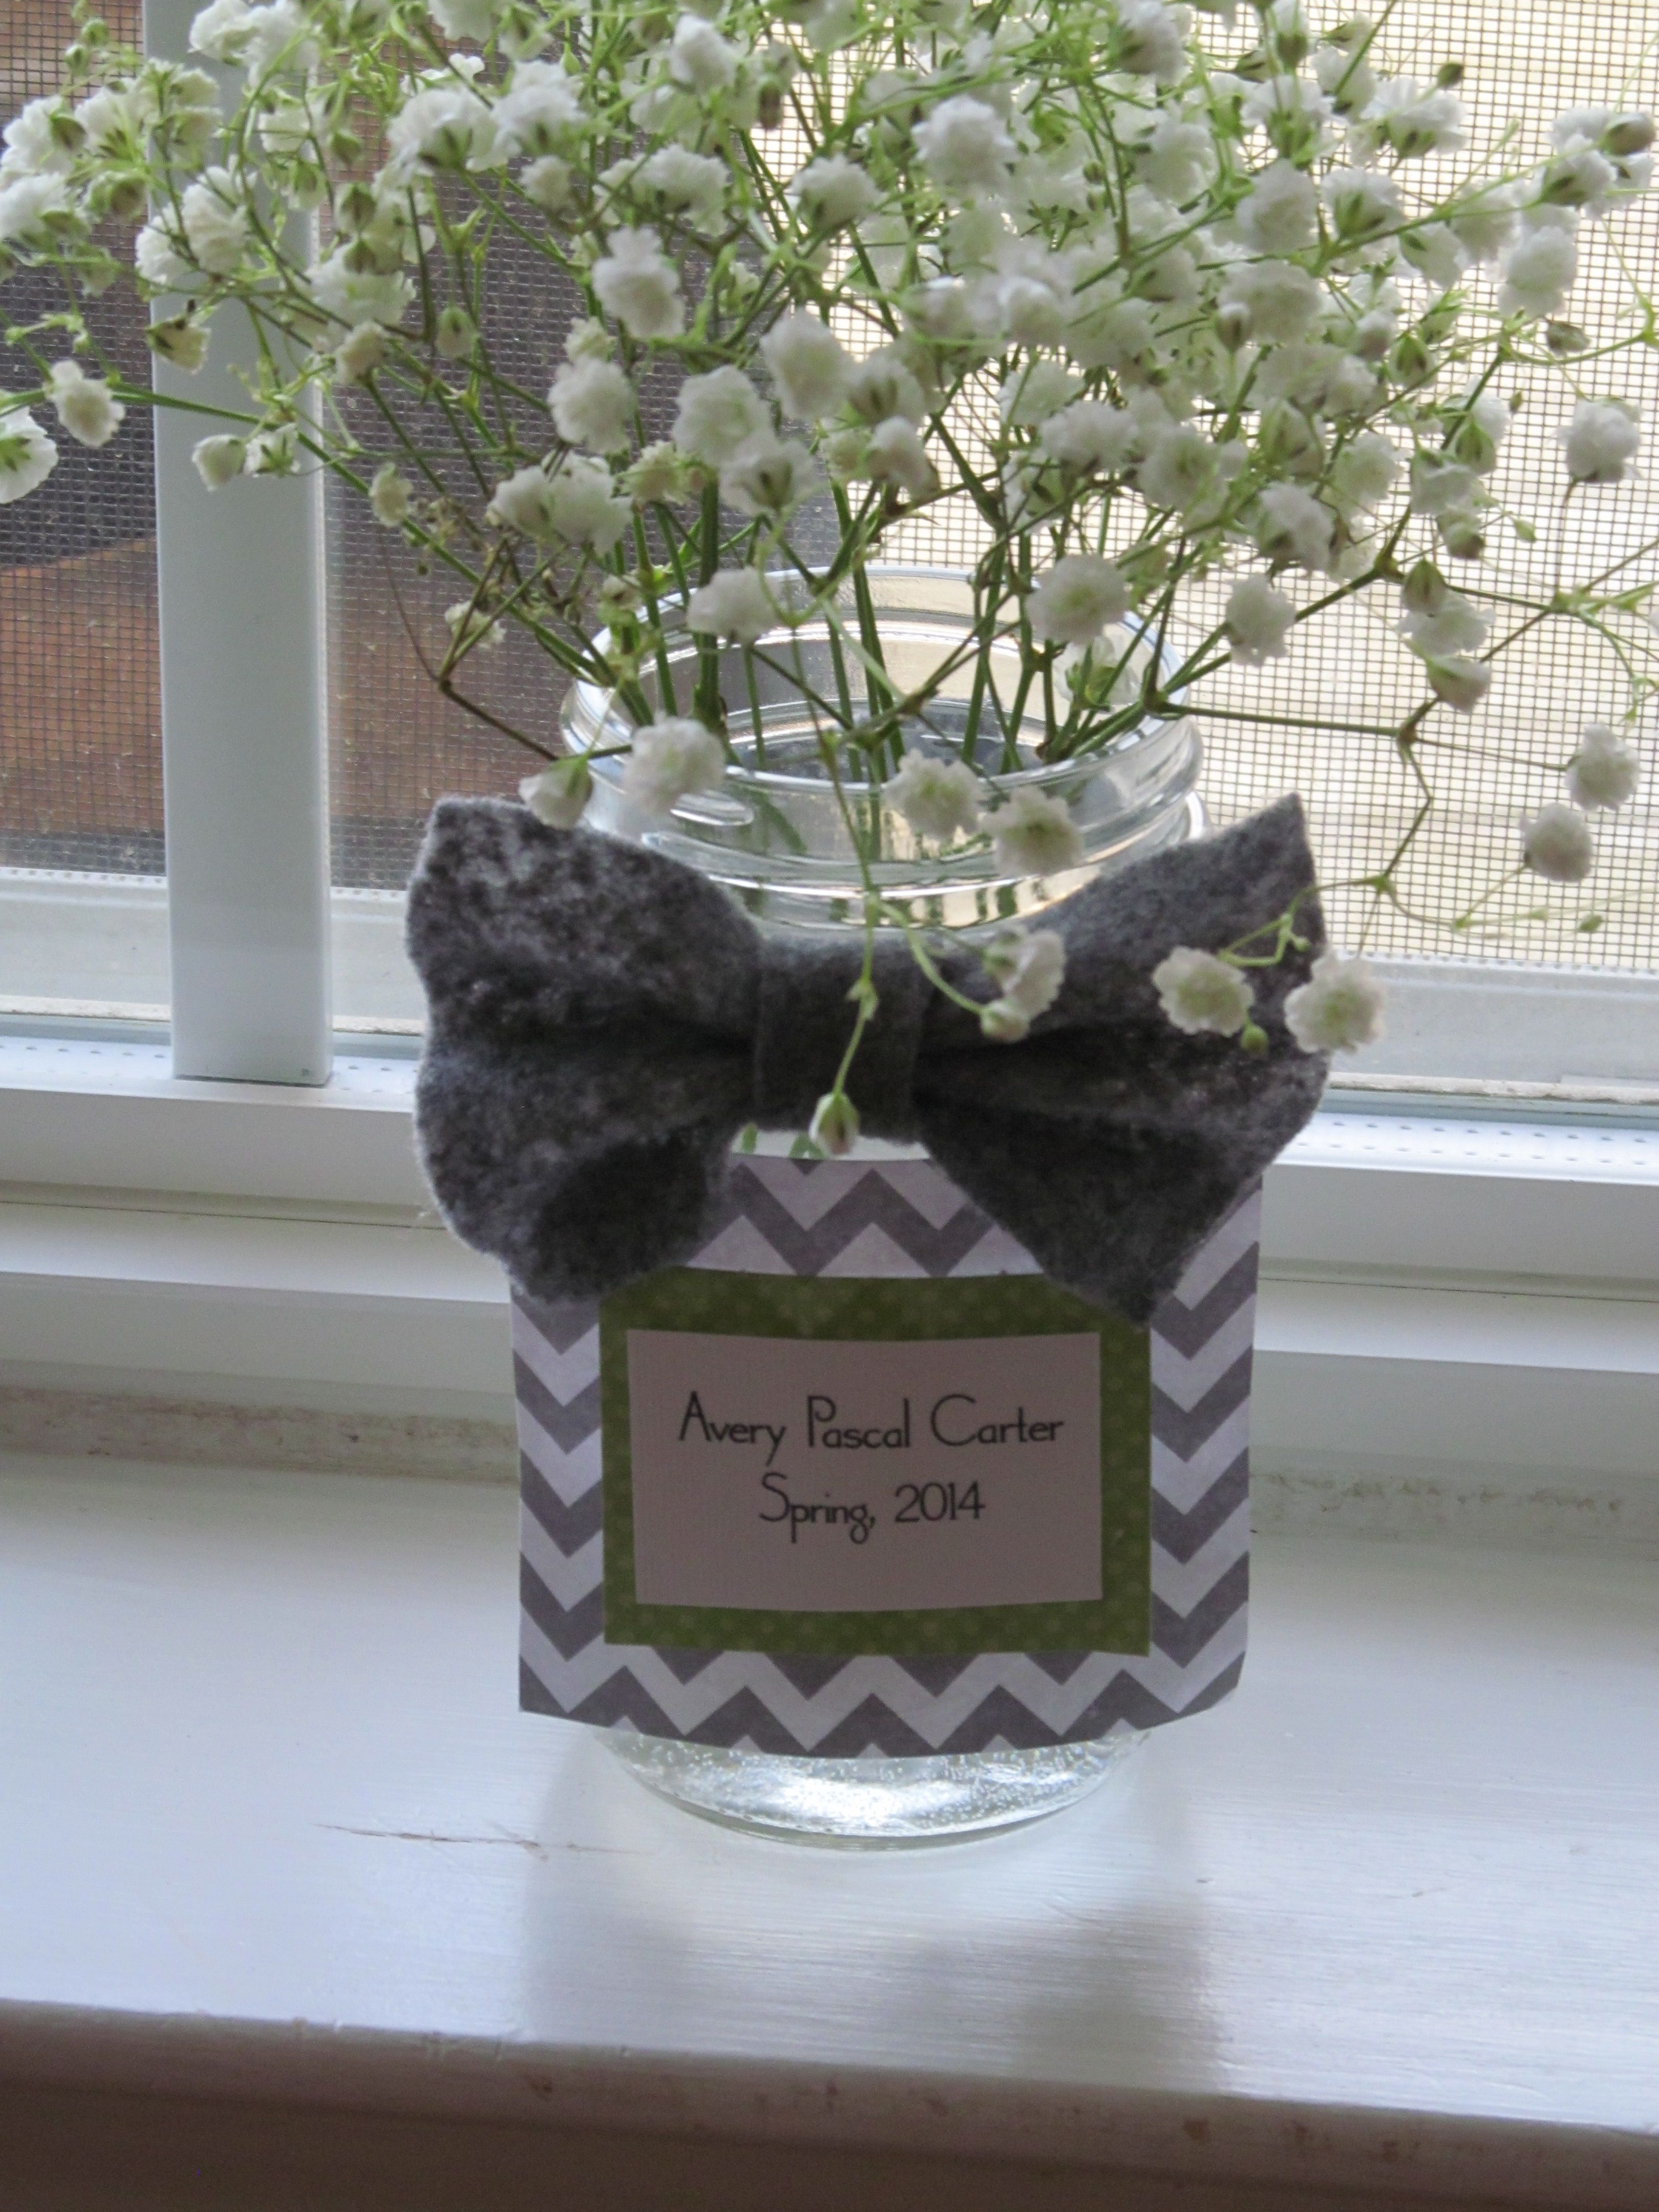 Bowtie and chevron themed baby shower decor.